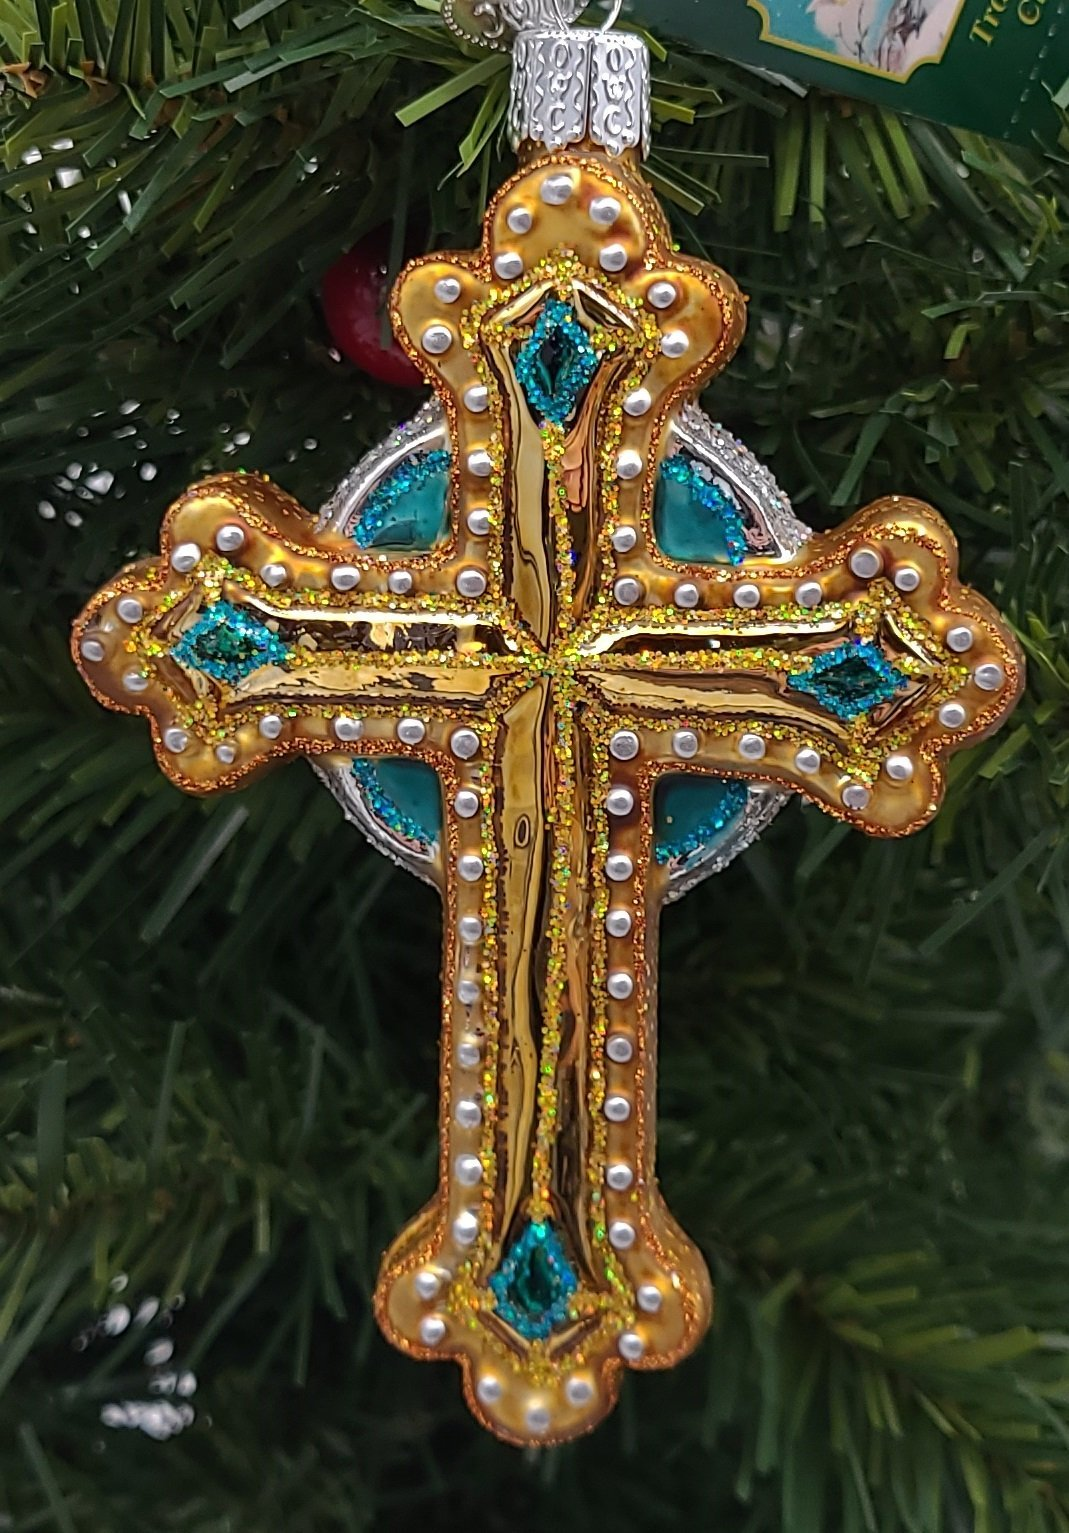 Blown Glass Hanging Jeweled Cross Green Accents Christmas Ornament - Schmidt Christmas Market Christmas Decoration